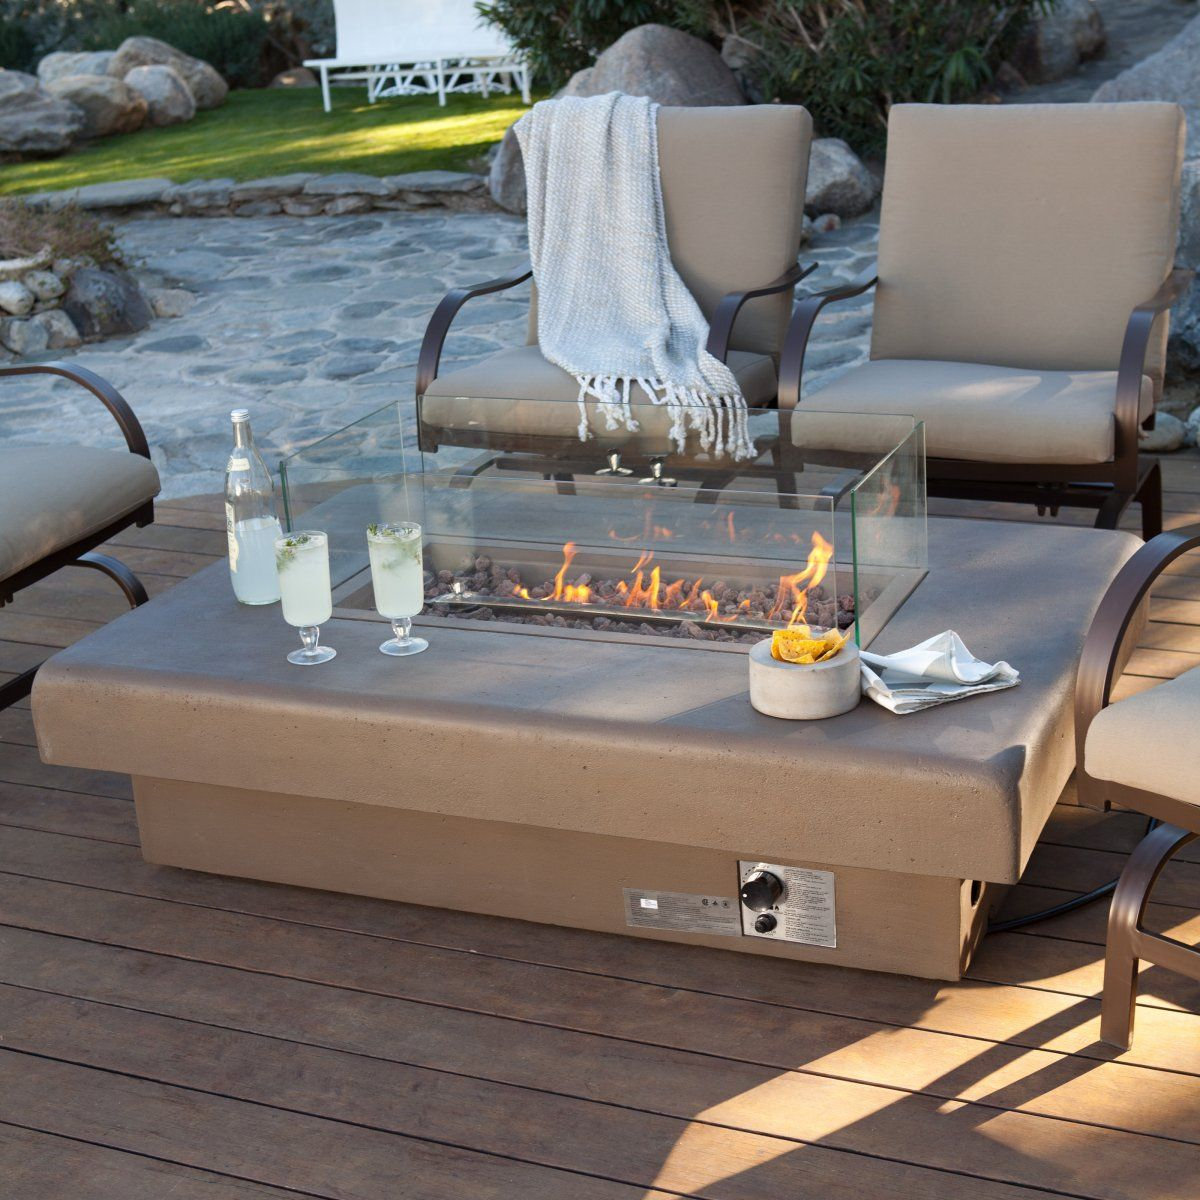 The Unusual Combination Of Table And Fire Place Pits